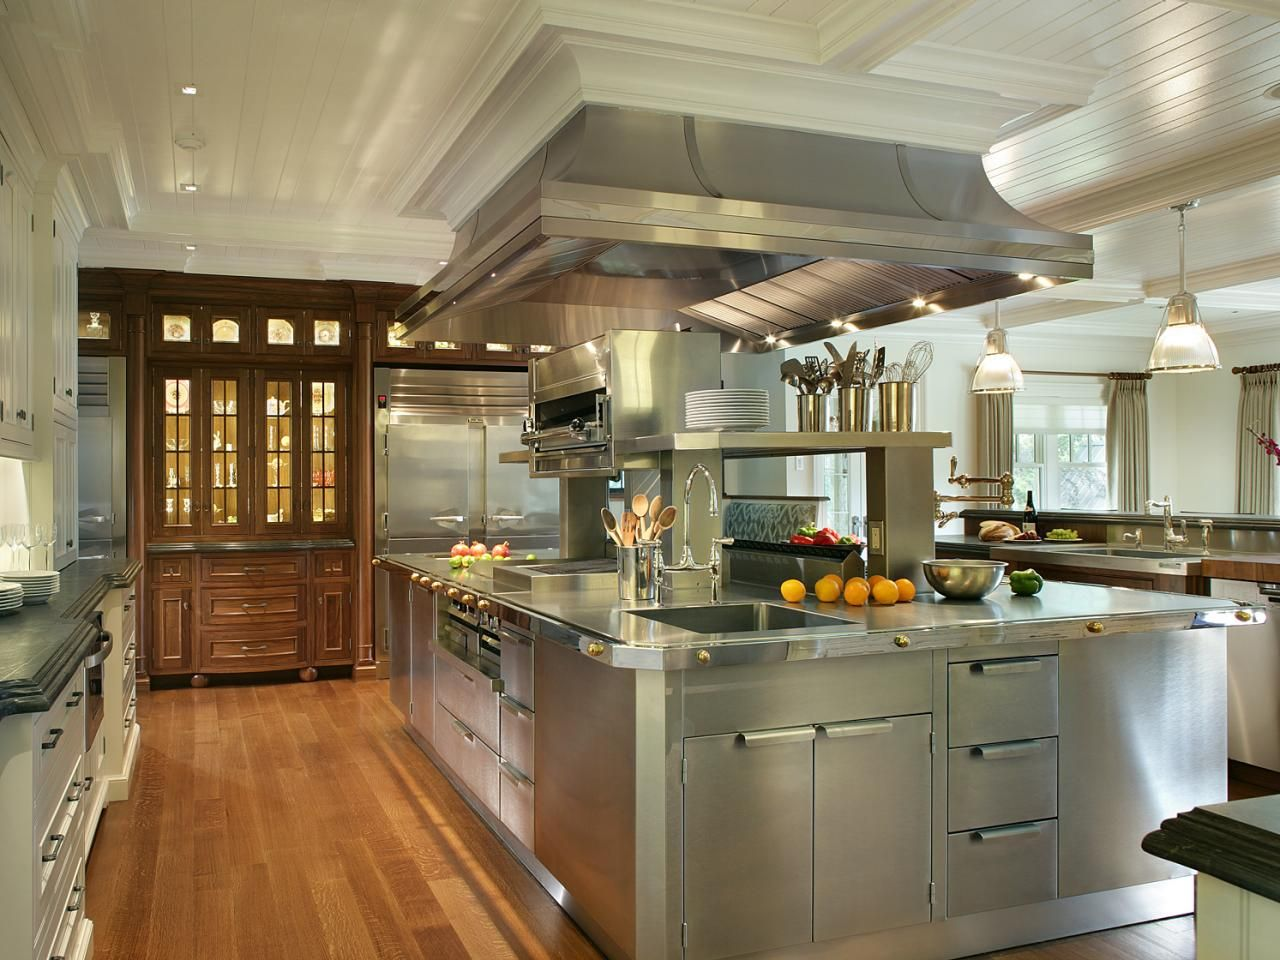 Dream Kitchens Best 25 Chef Kitchen Ideas On Pinterest  The Chef Large Closed